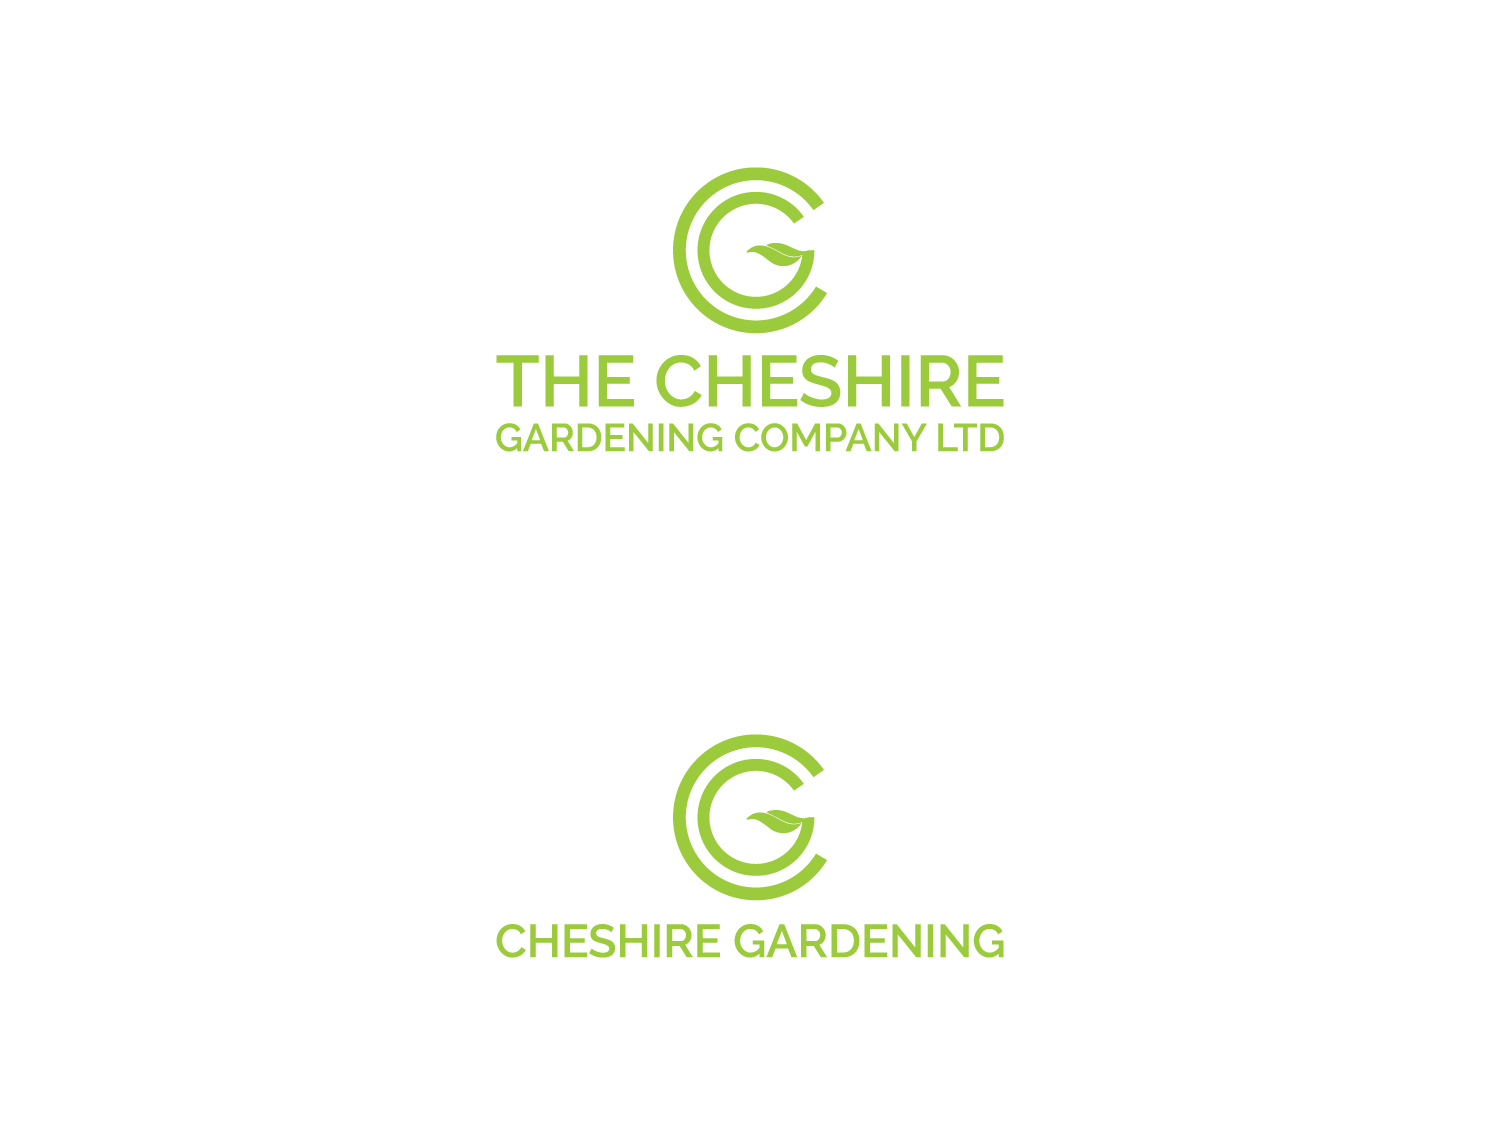 Superieur Logo Design By Jisuvo9 For The Cheshire Gardening Company Ltd | Design  #15100416